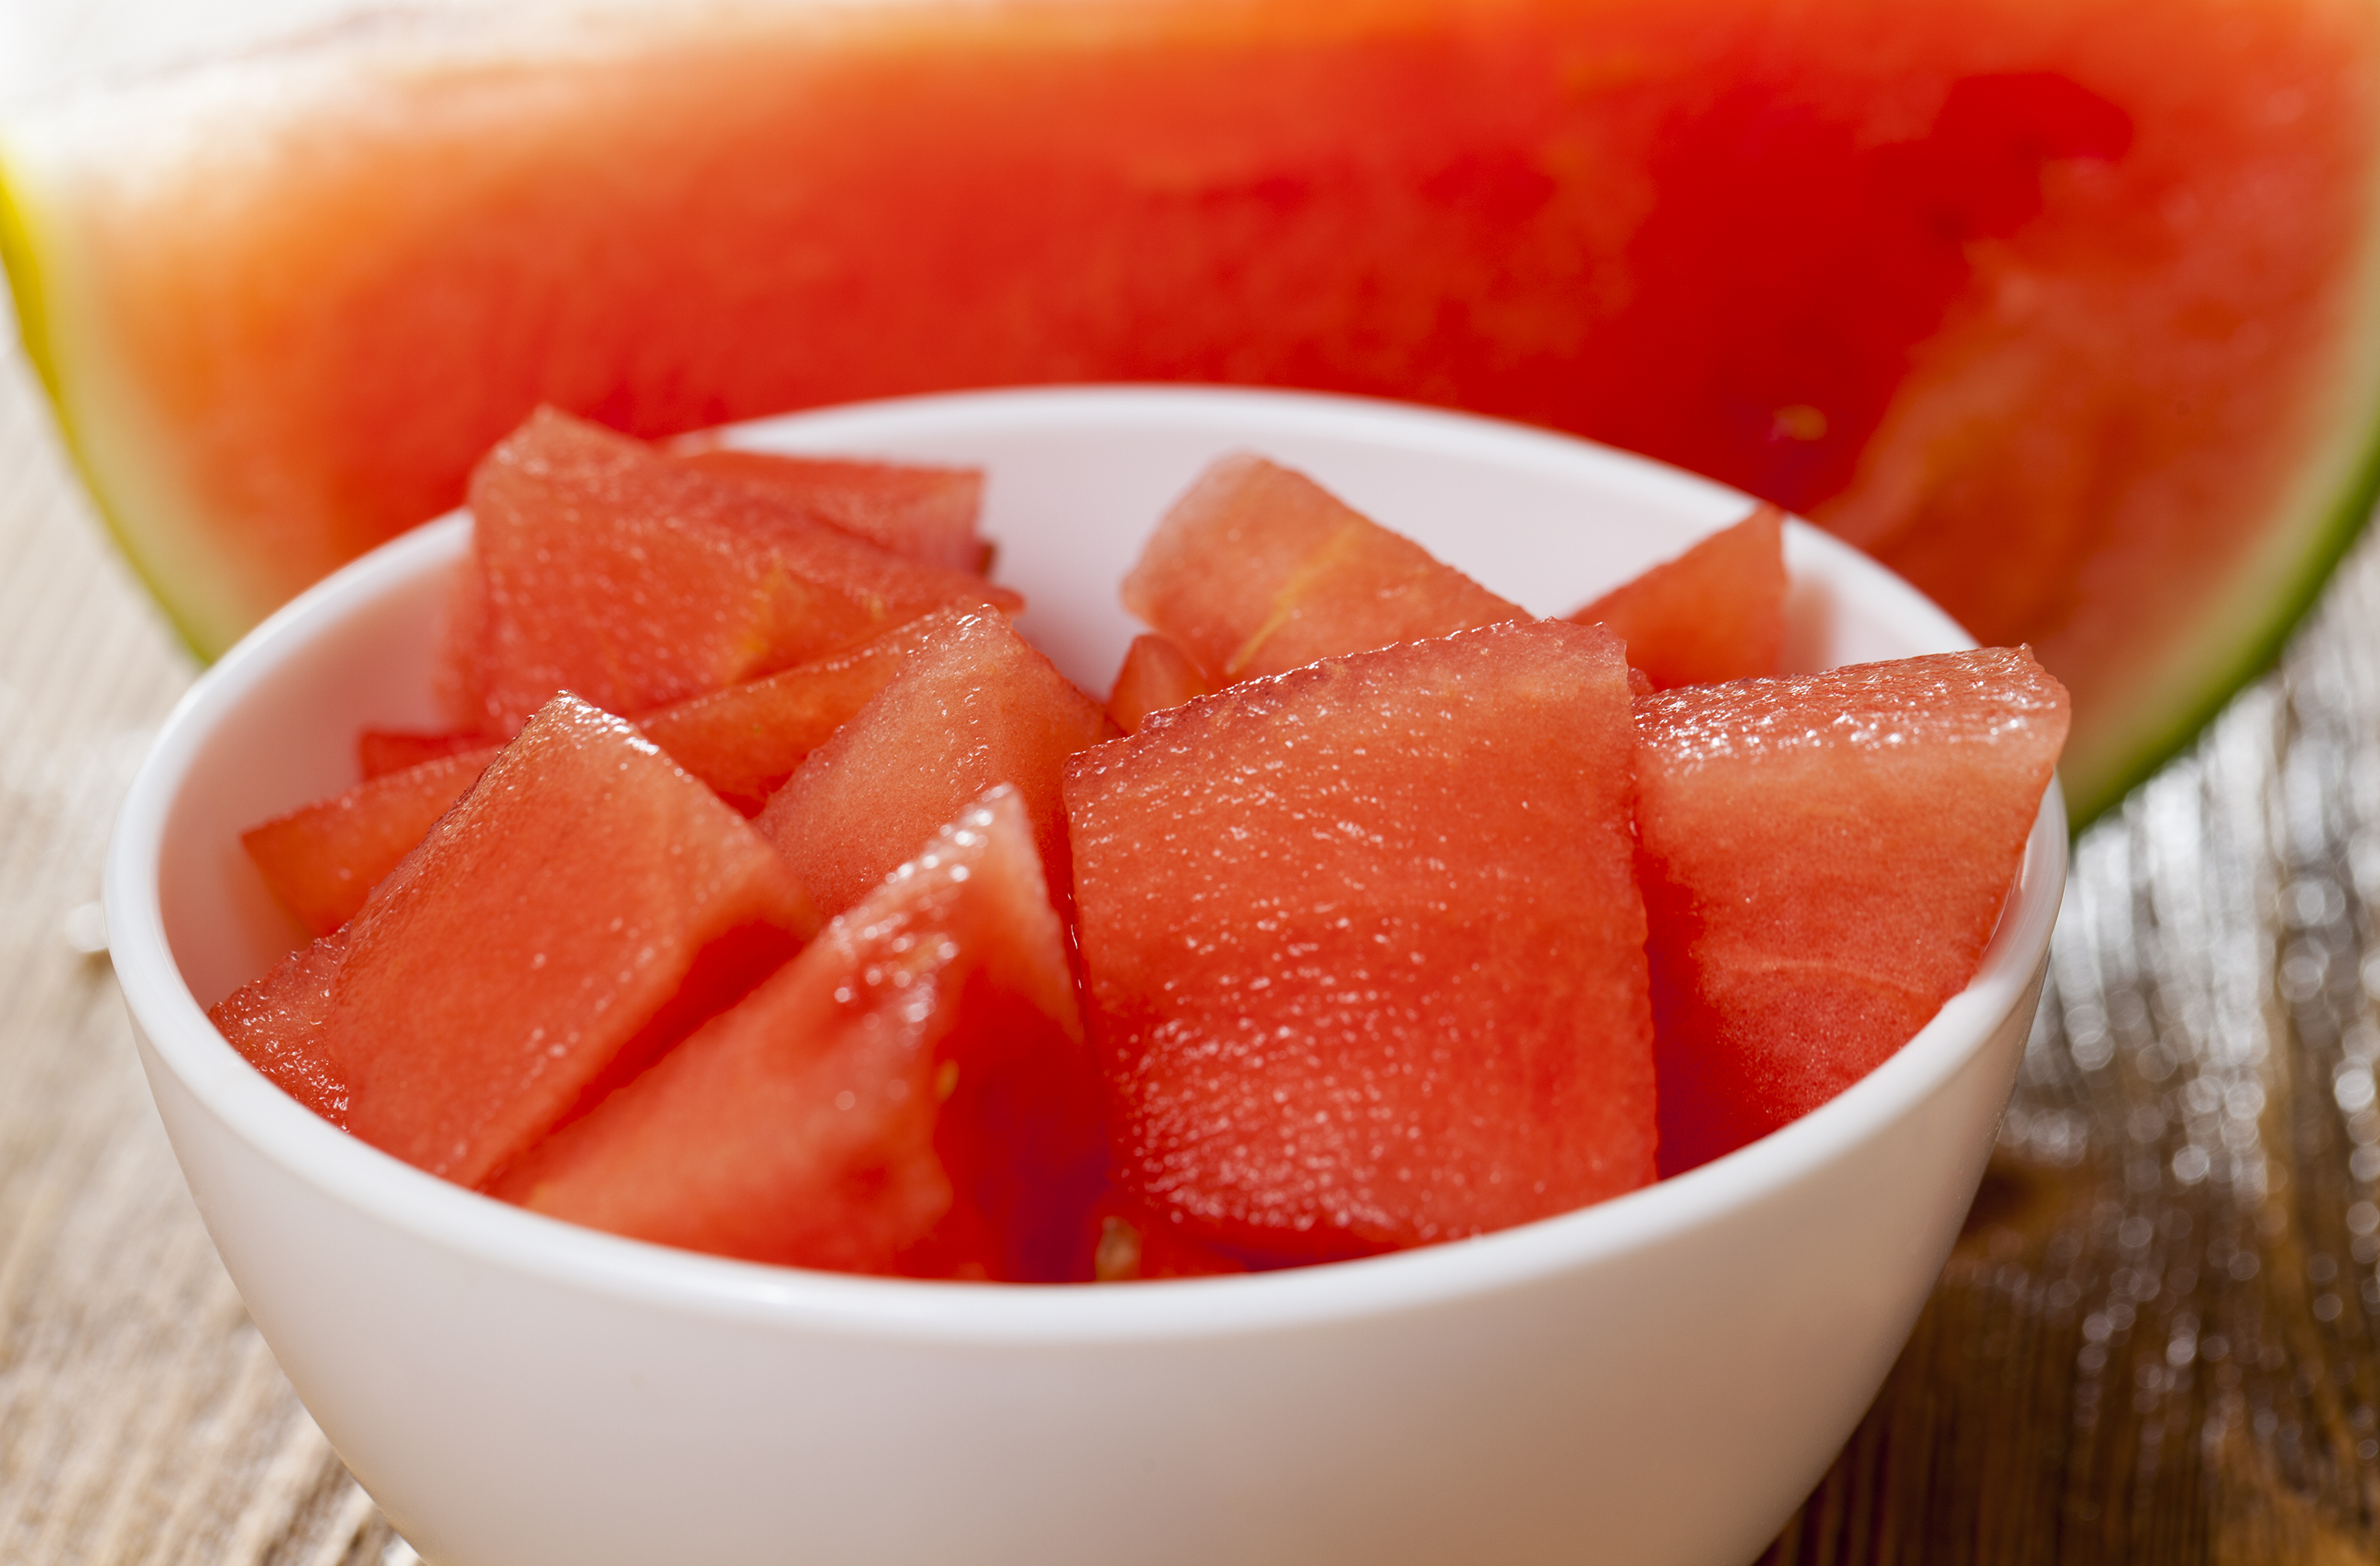 CDC Issues Salmonella Warning About Recalled Melon | Kitchn